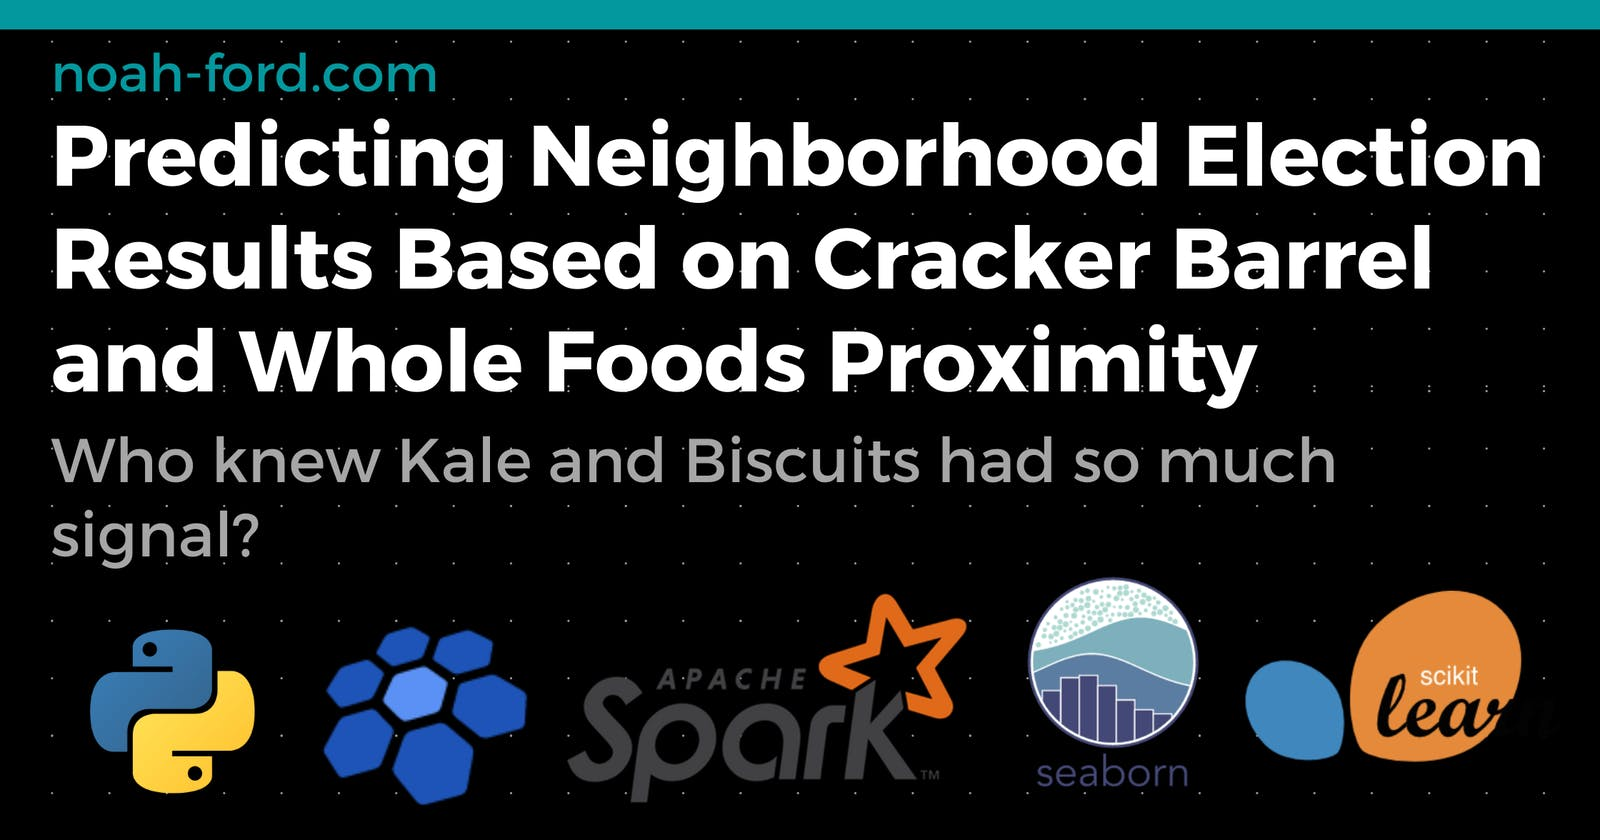 Predicting Your Neighborhood Election Results Based on Cracker Barrel and Whole Foods Proximity